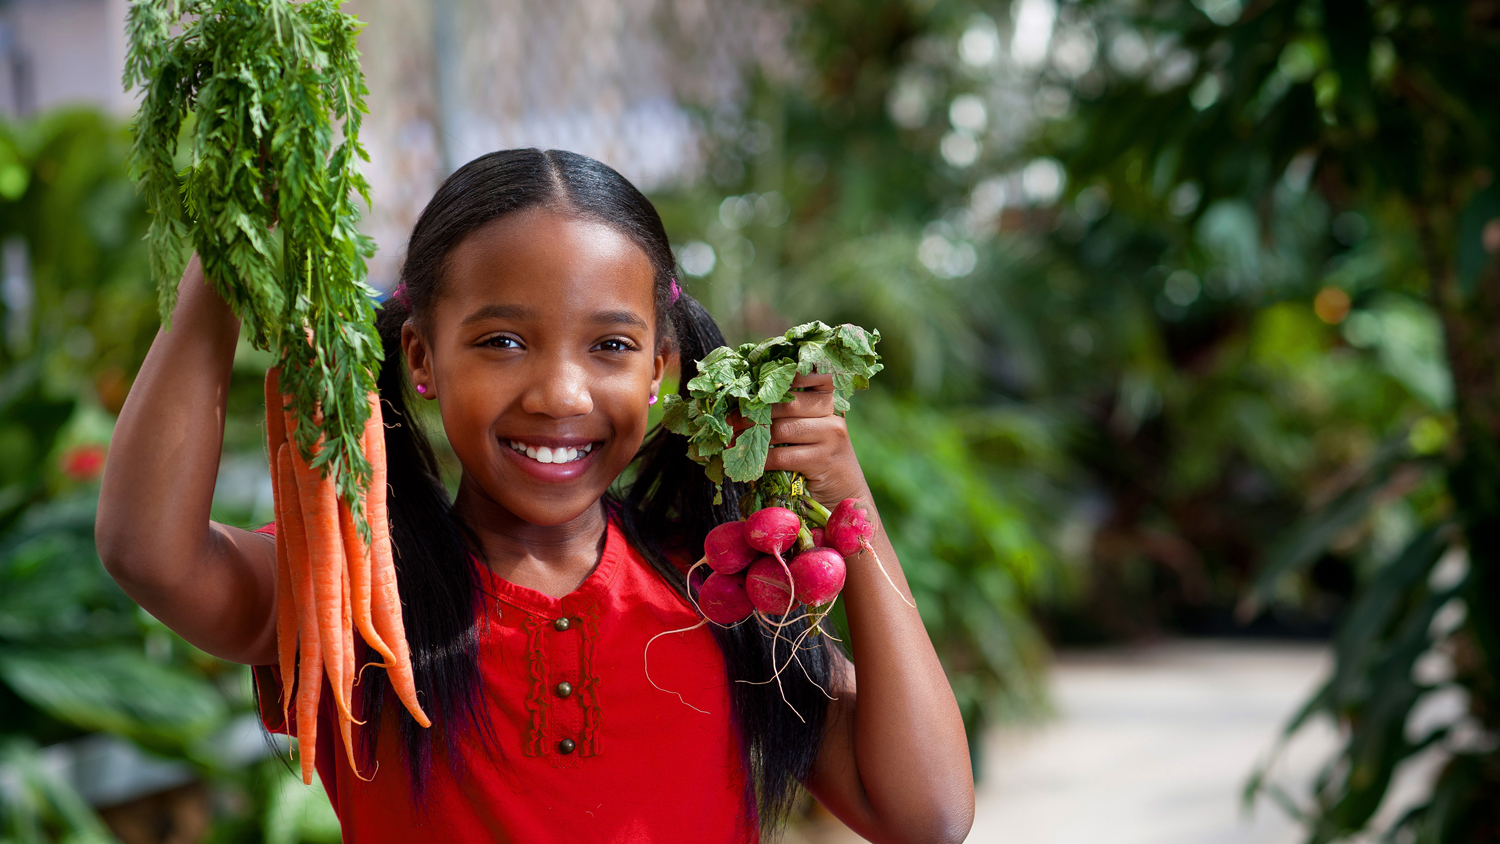 Girl holding carrots and radishes while standing in a garden.